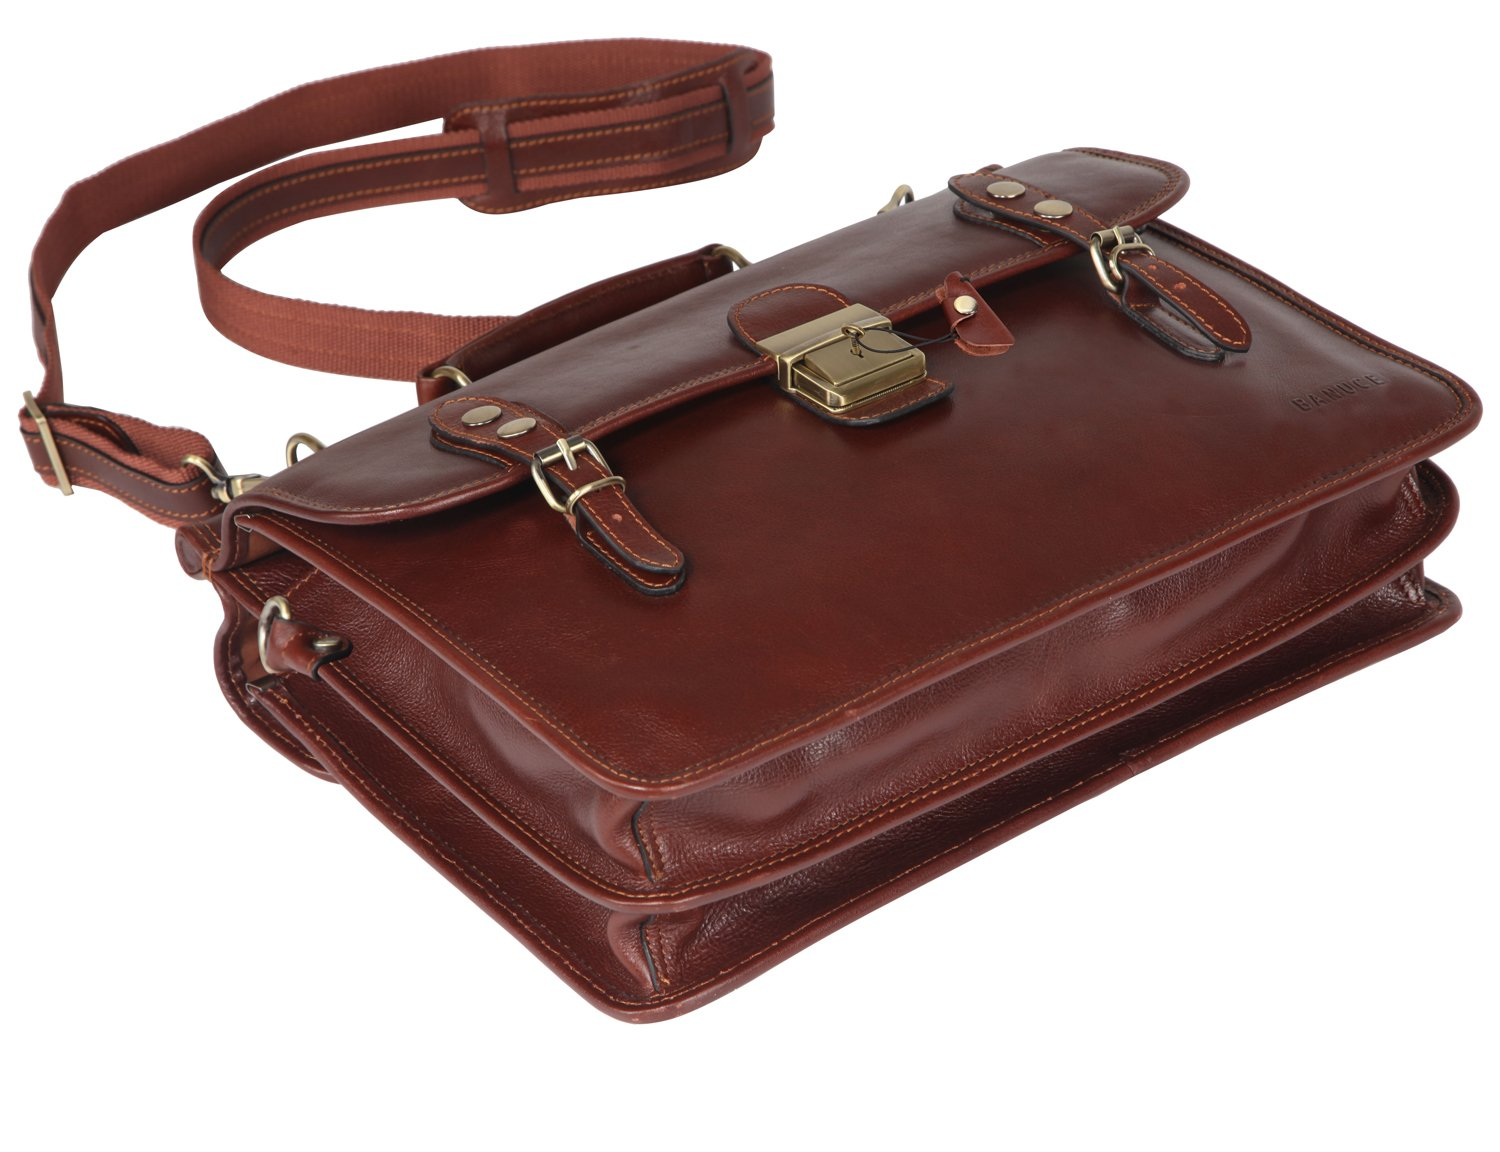 Banuce Mens Italian Leather Flapover Briefcase Tote 2way Business Laptop Messenger Bag Attache Case by Banuce (Image #5)